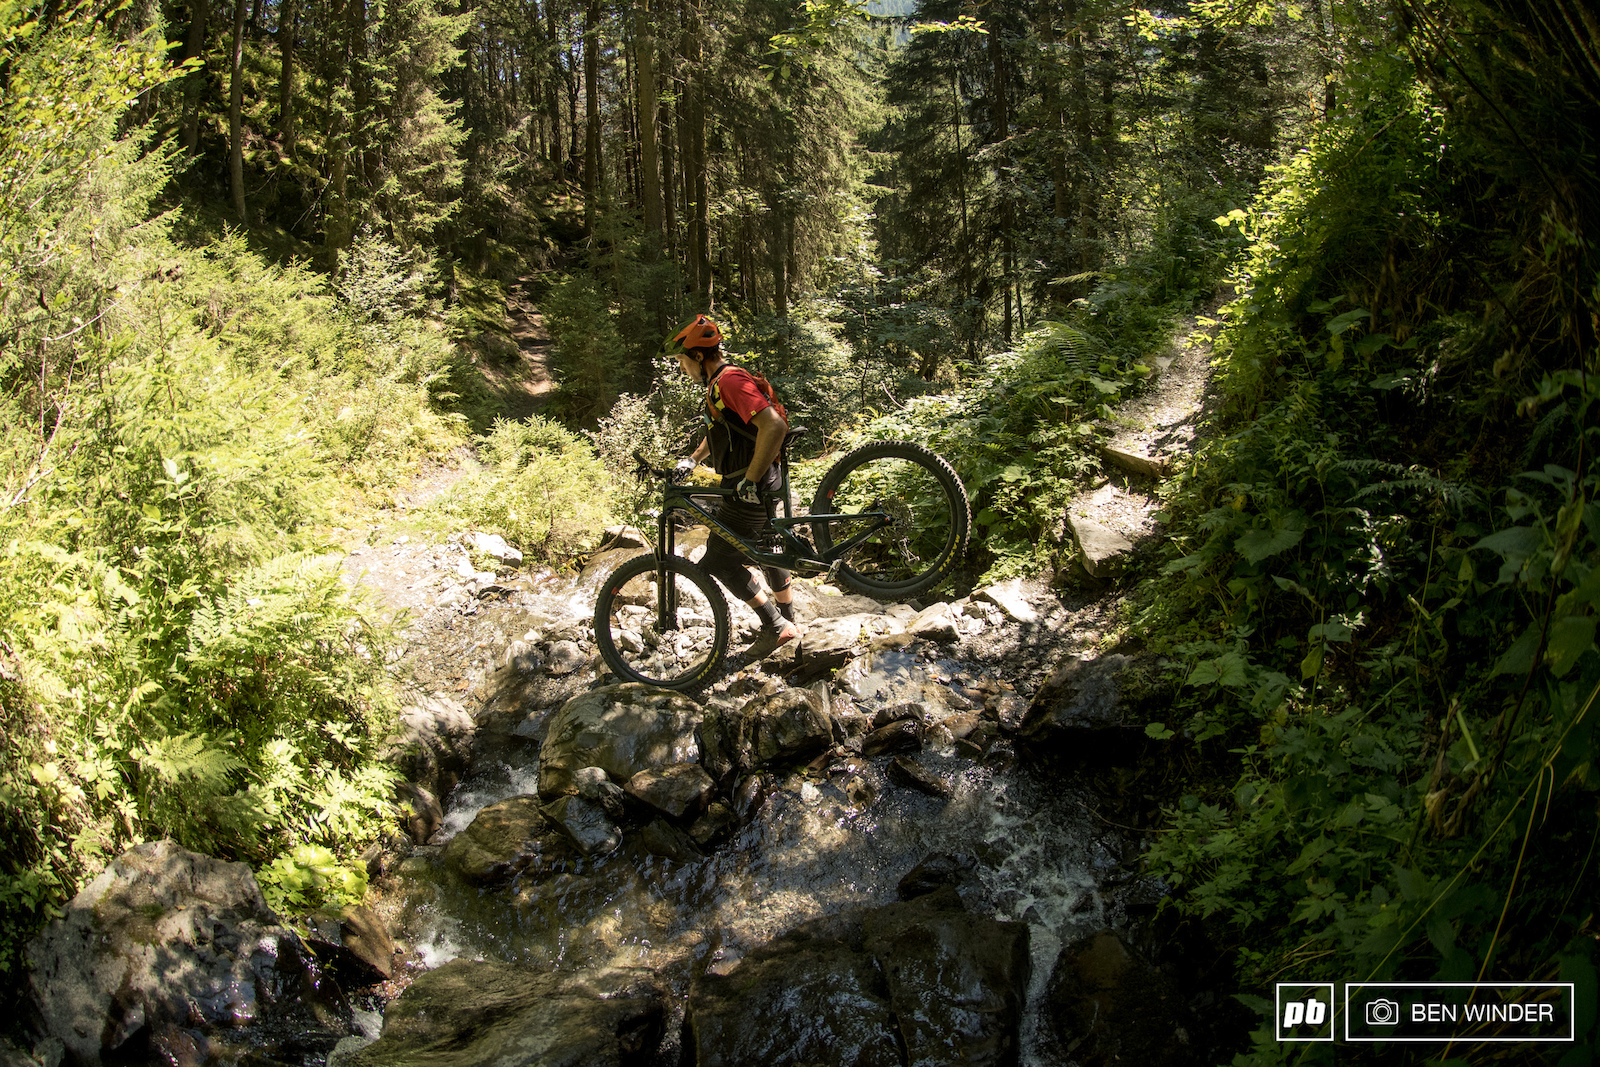 Most of the riding is machine-built but there are some nice singletracks too.